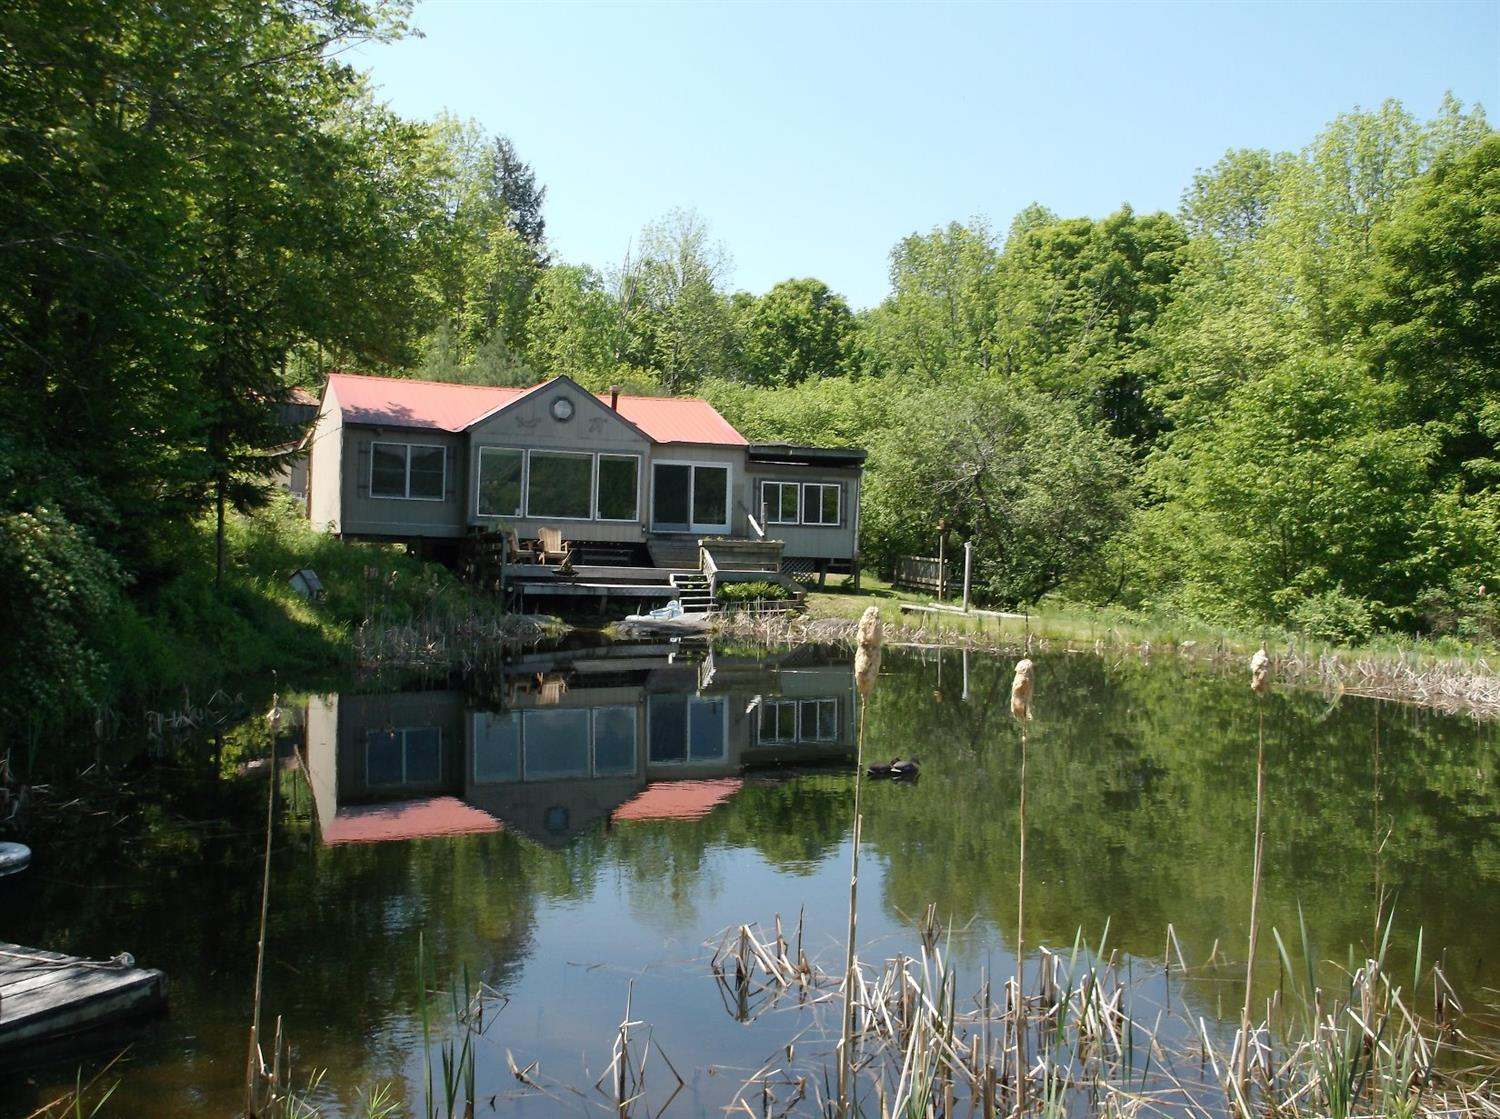 149,900 - Beautiful Cabin!3 Bedrooms, 1 Bath6.22 Acres With Pond